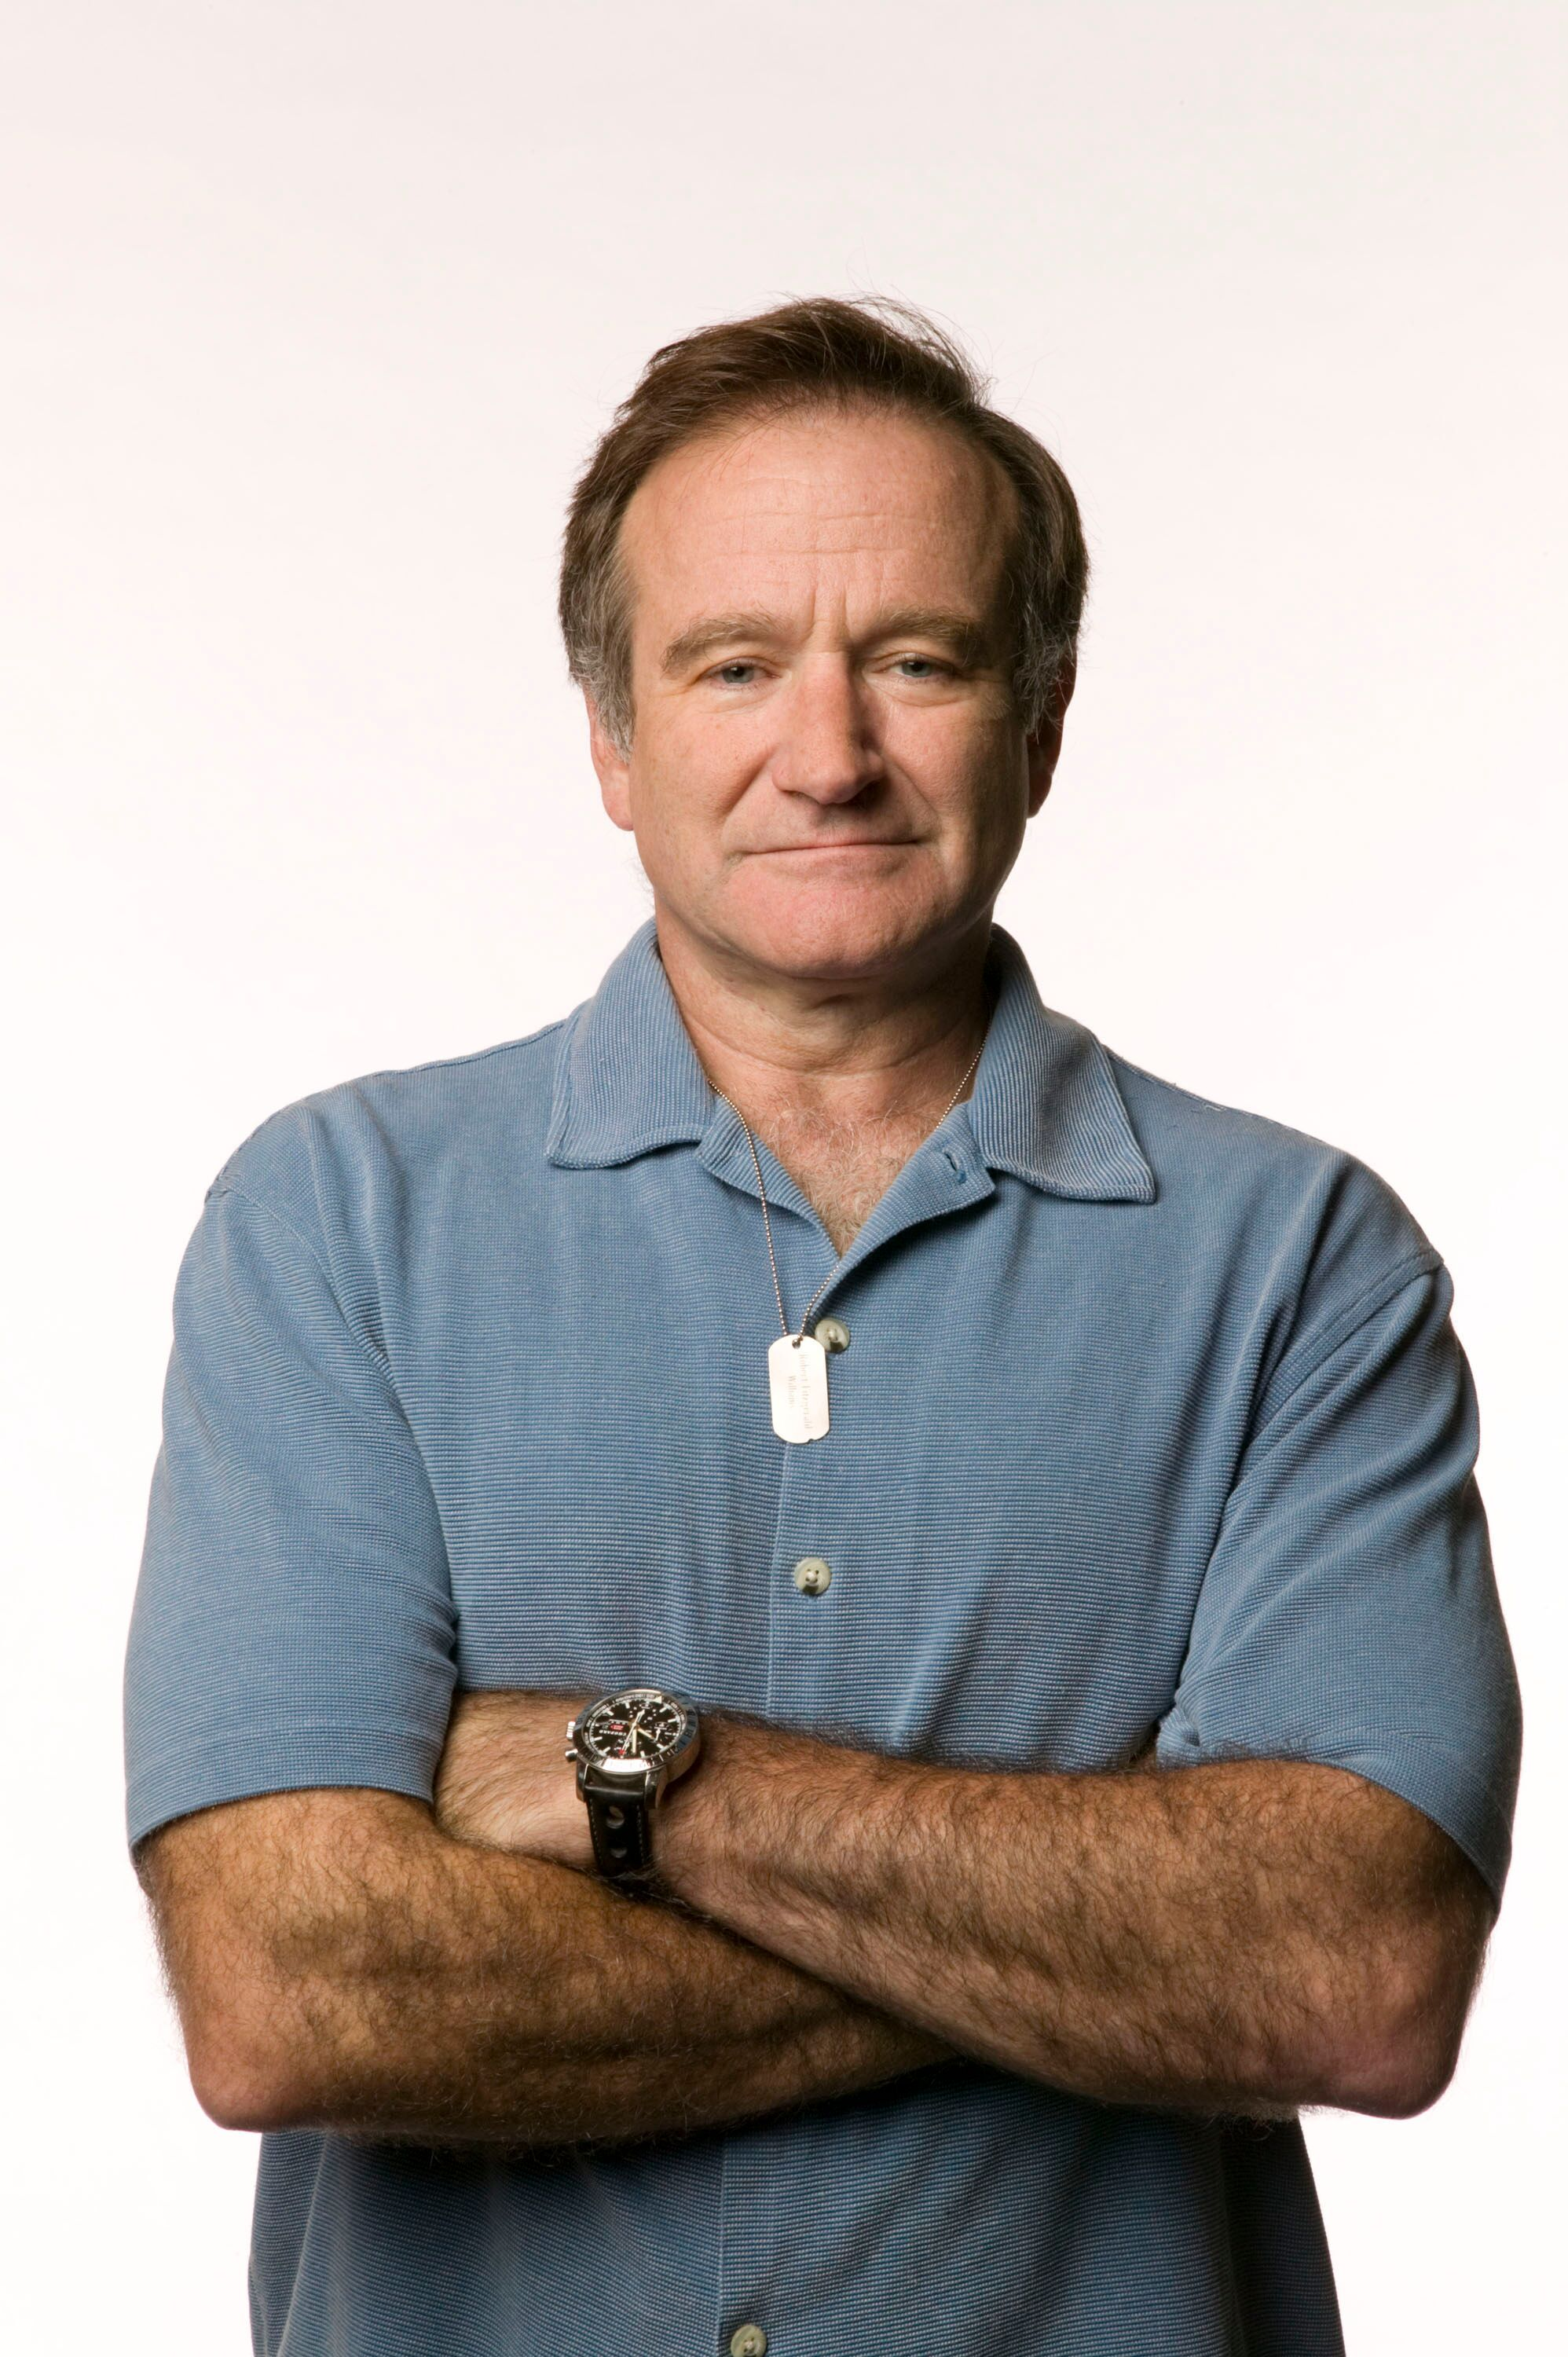 Robin Williams poses for the Search for the Cause campaign. | Source: Getty Images